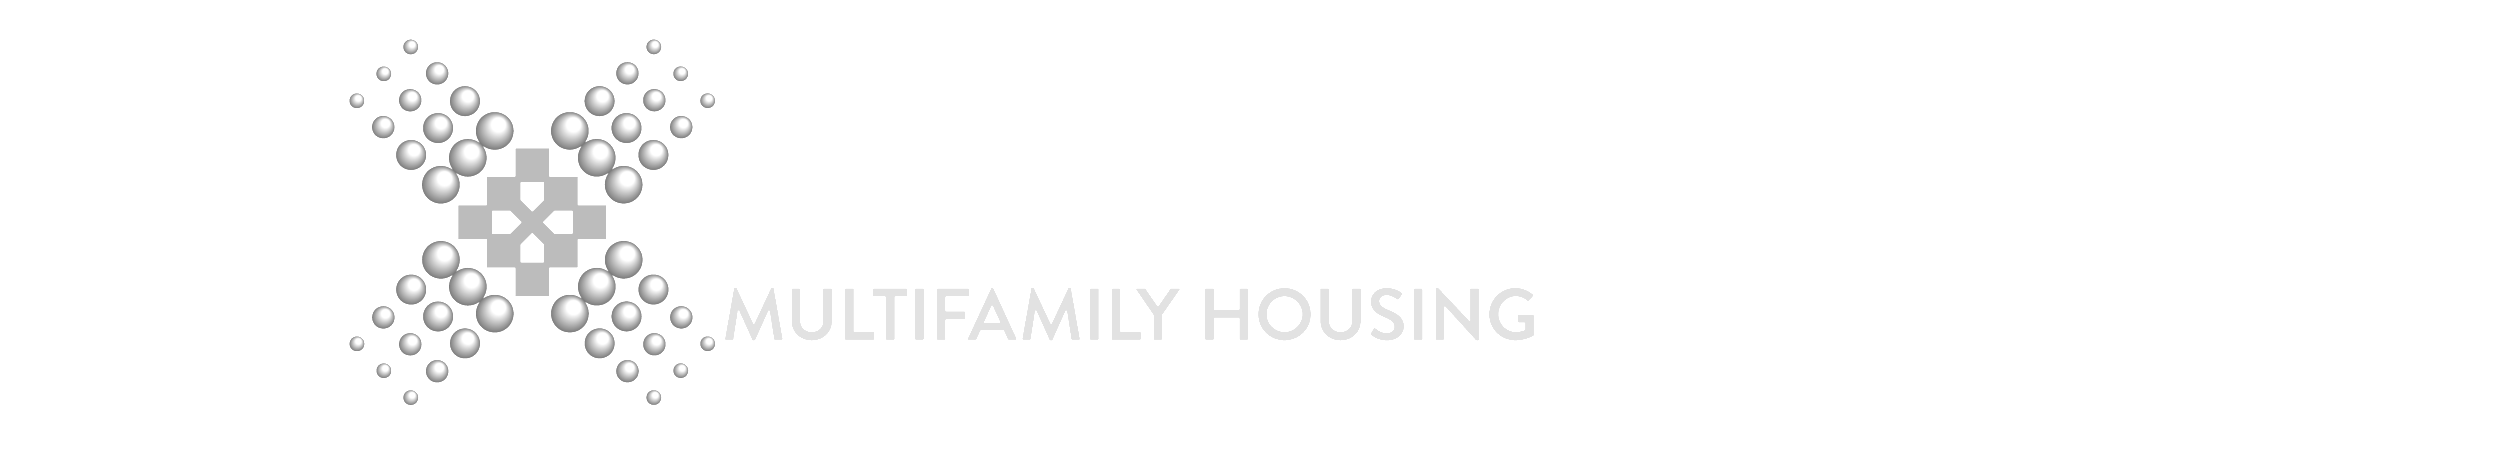 ExecutiveXchange Multifamily  White-01.png